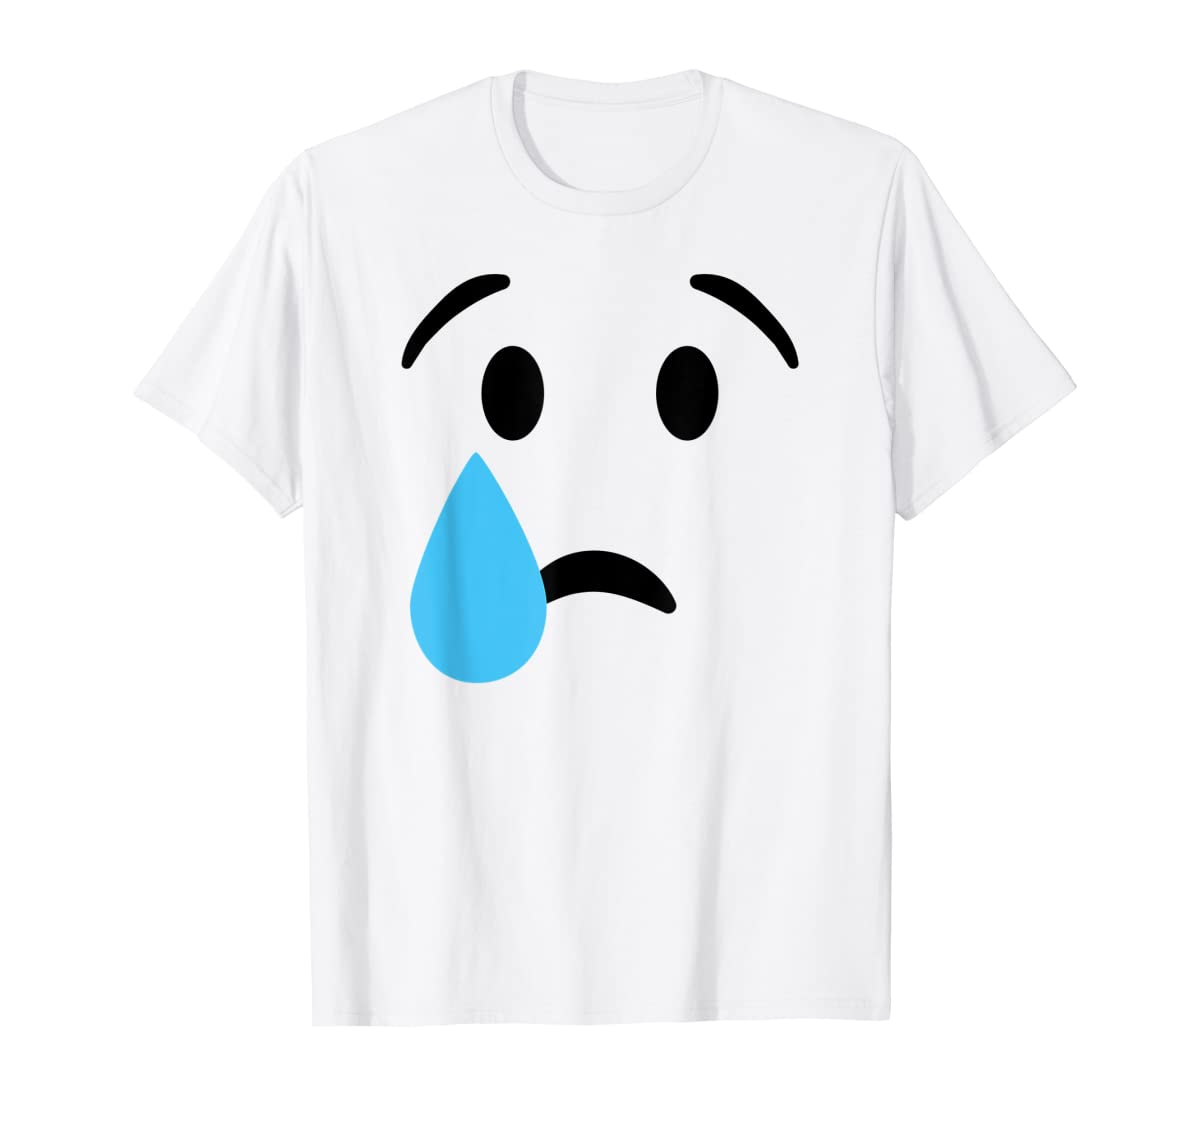 Sad Crying Tear Eyes Face Emojis Emoticon Halloween Costume T-Shirt-Men's T-Shirt-White